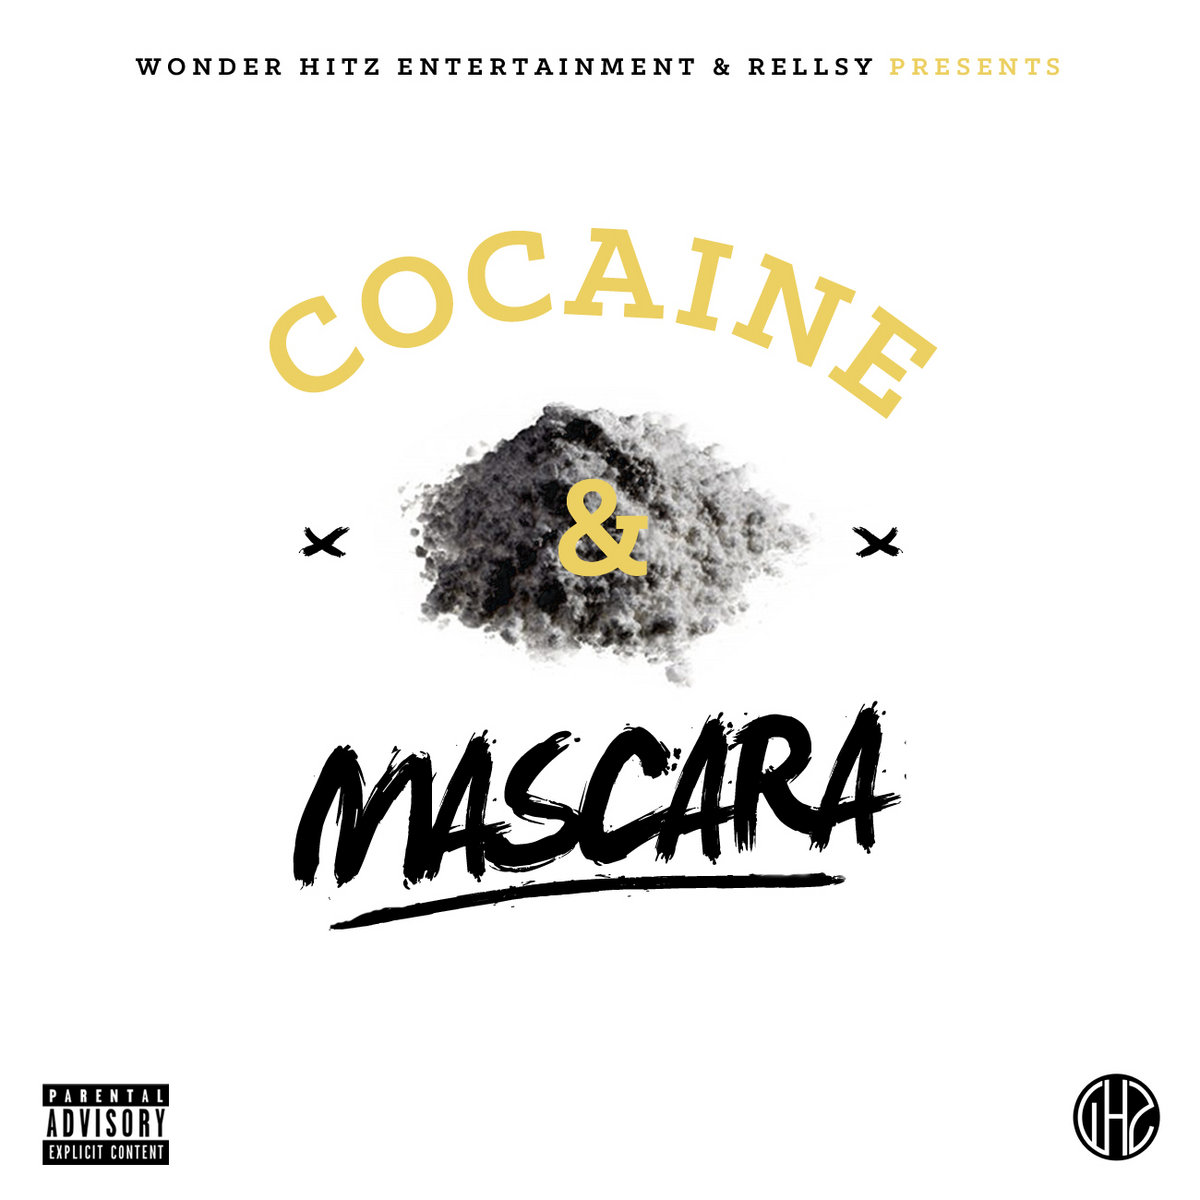 Rellsy - Cocaine & Mascara